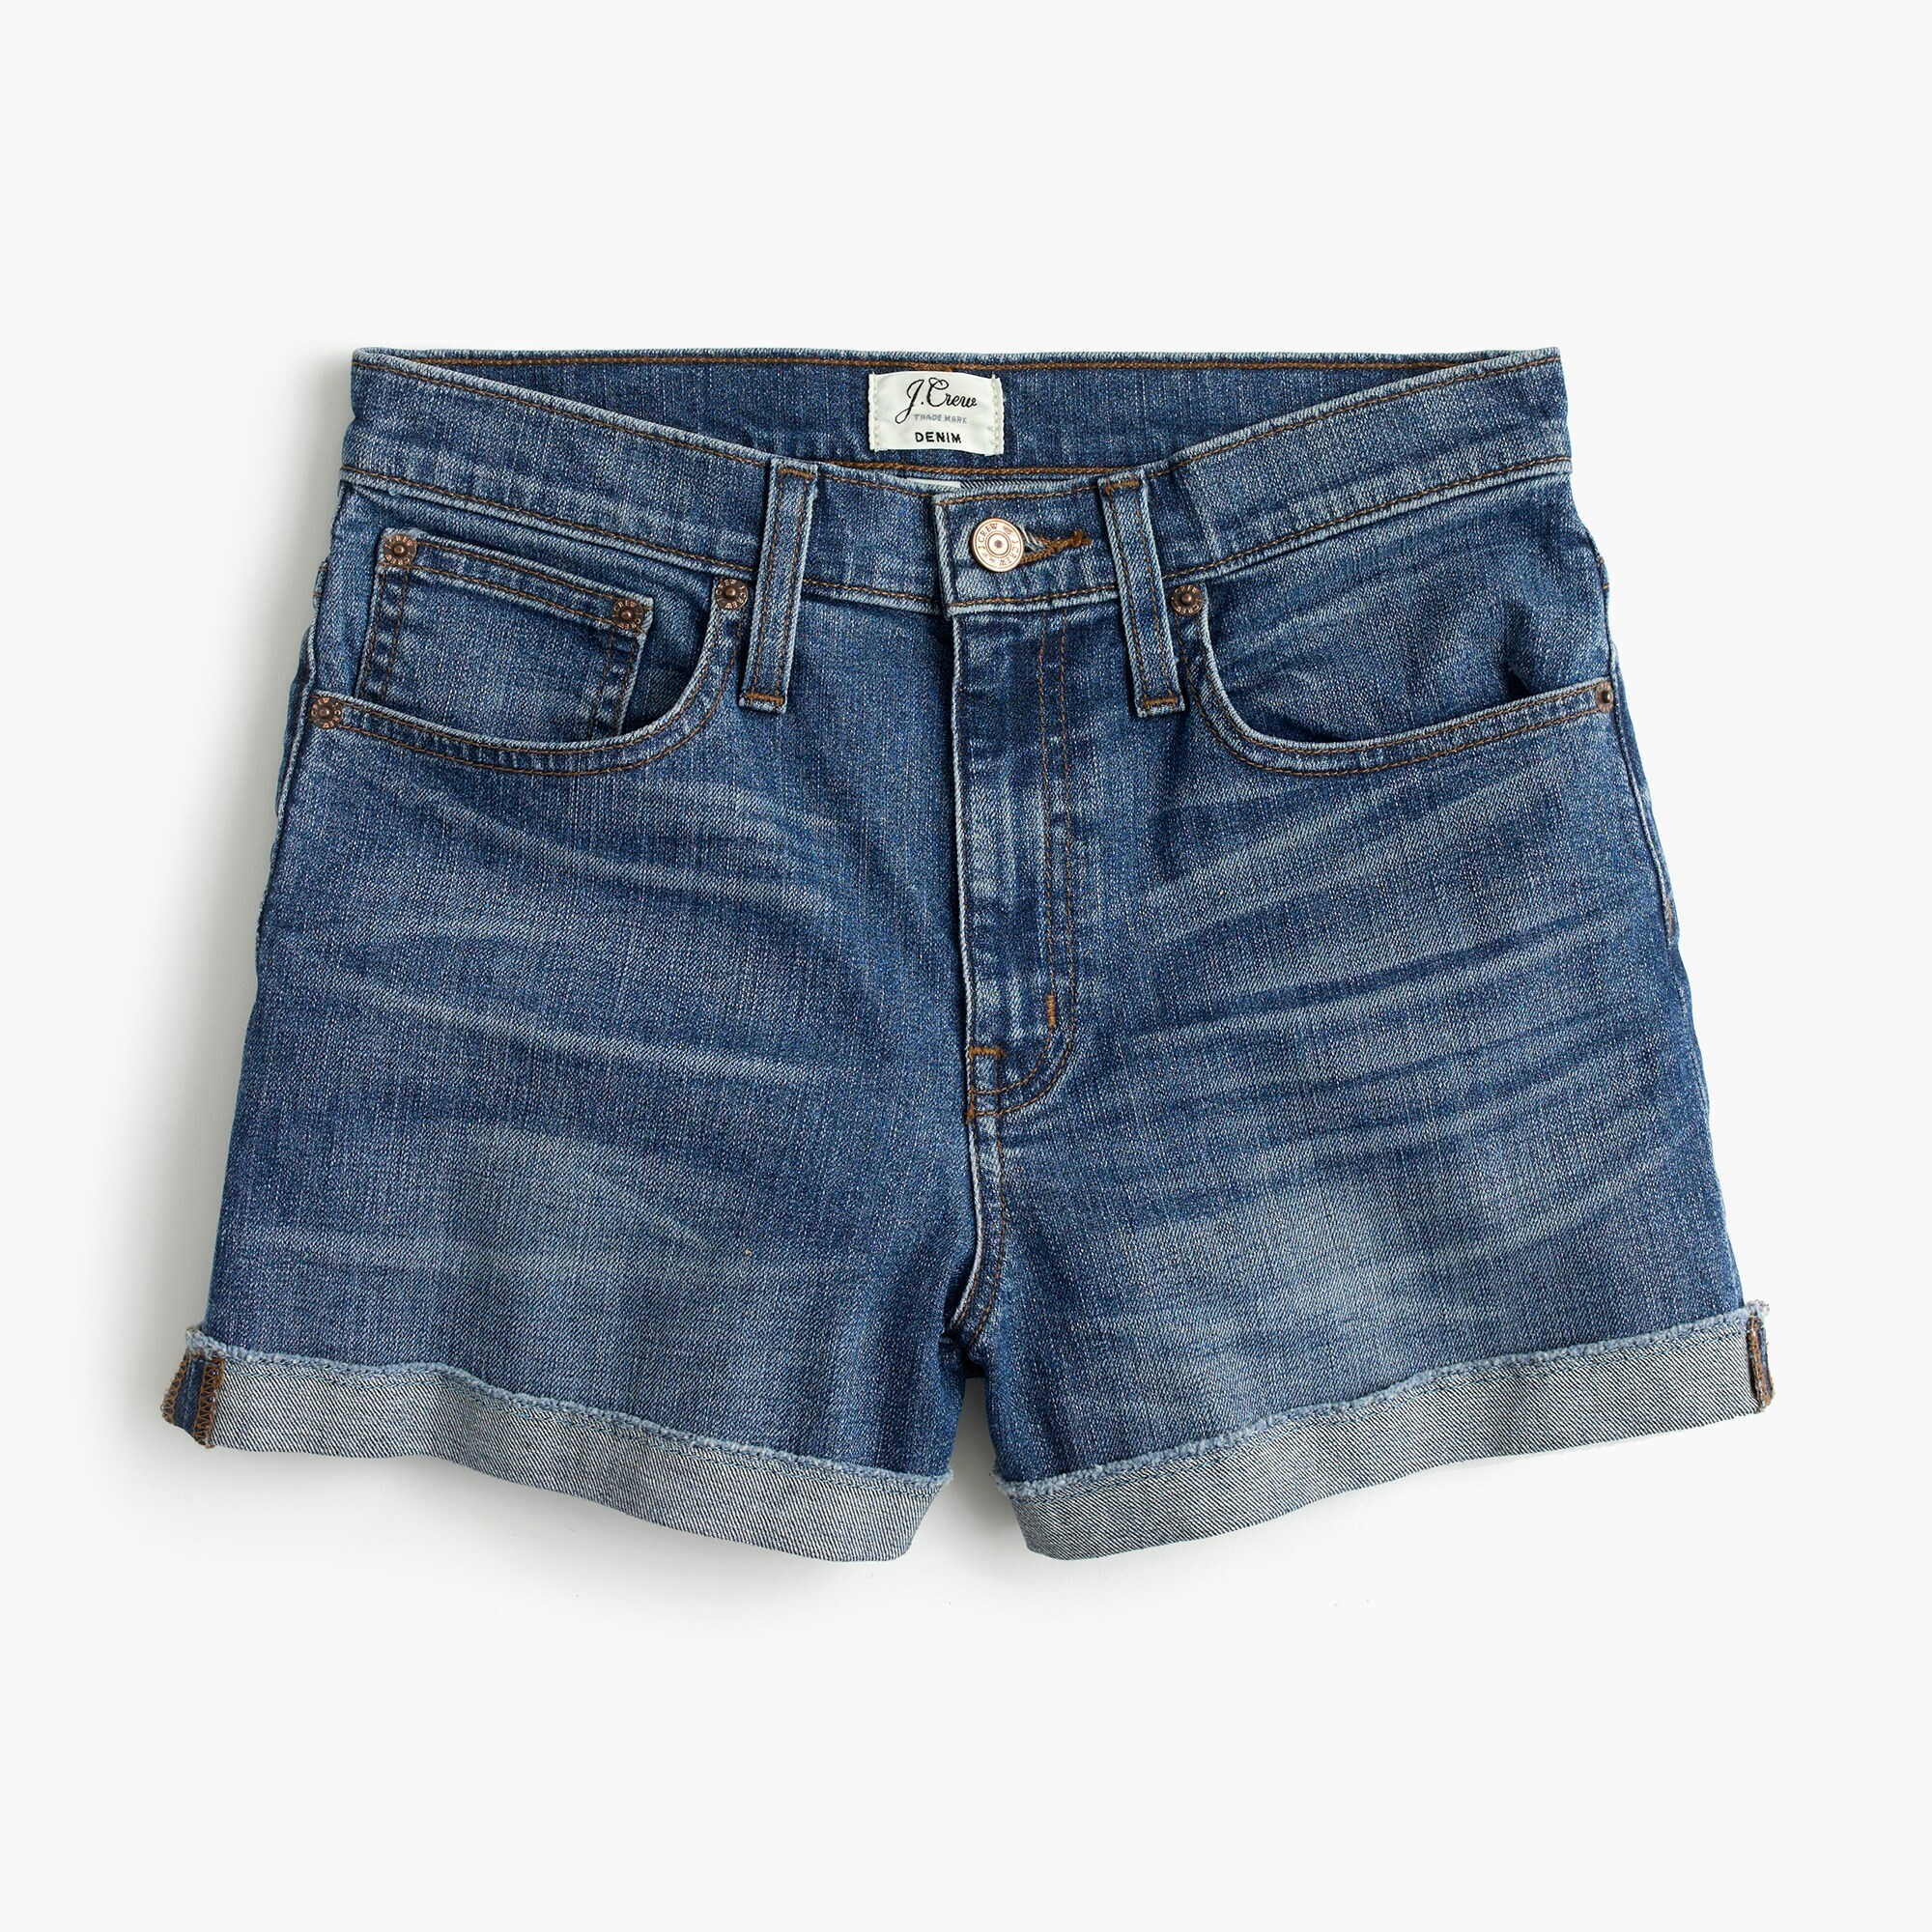 High-rise denim short in Brixton wash